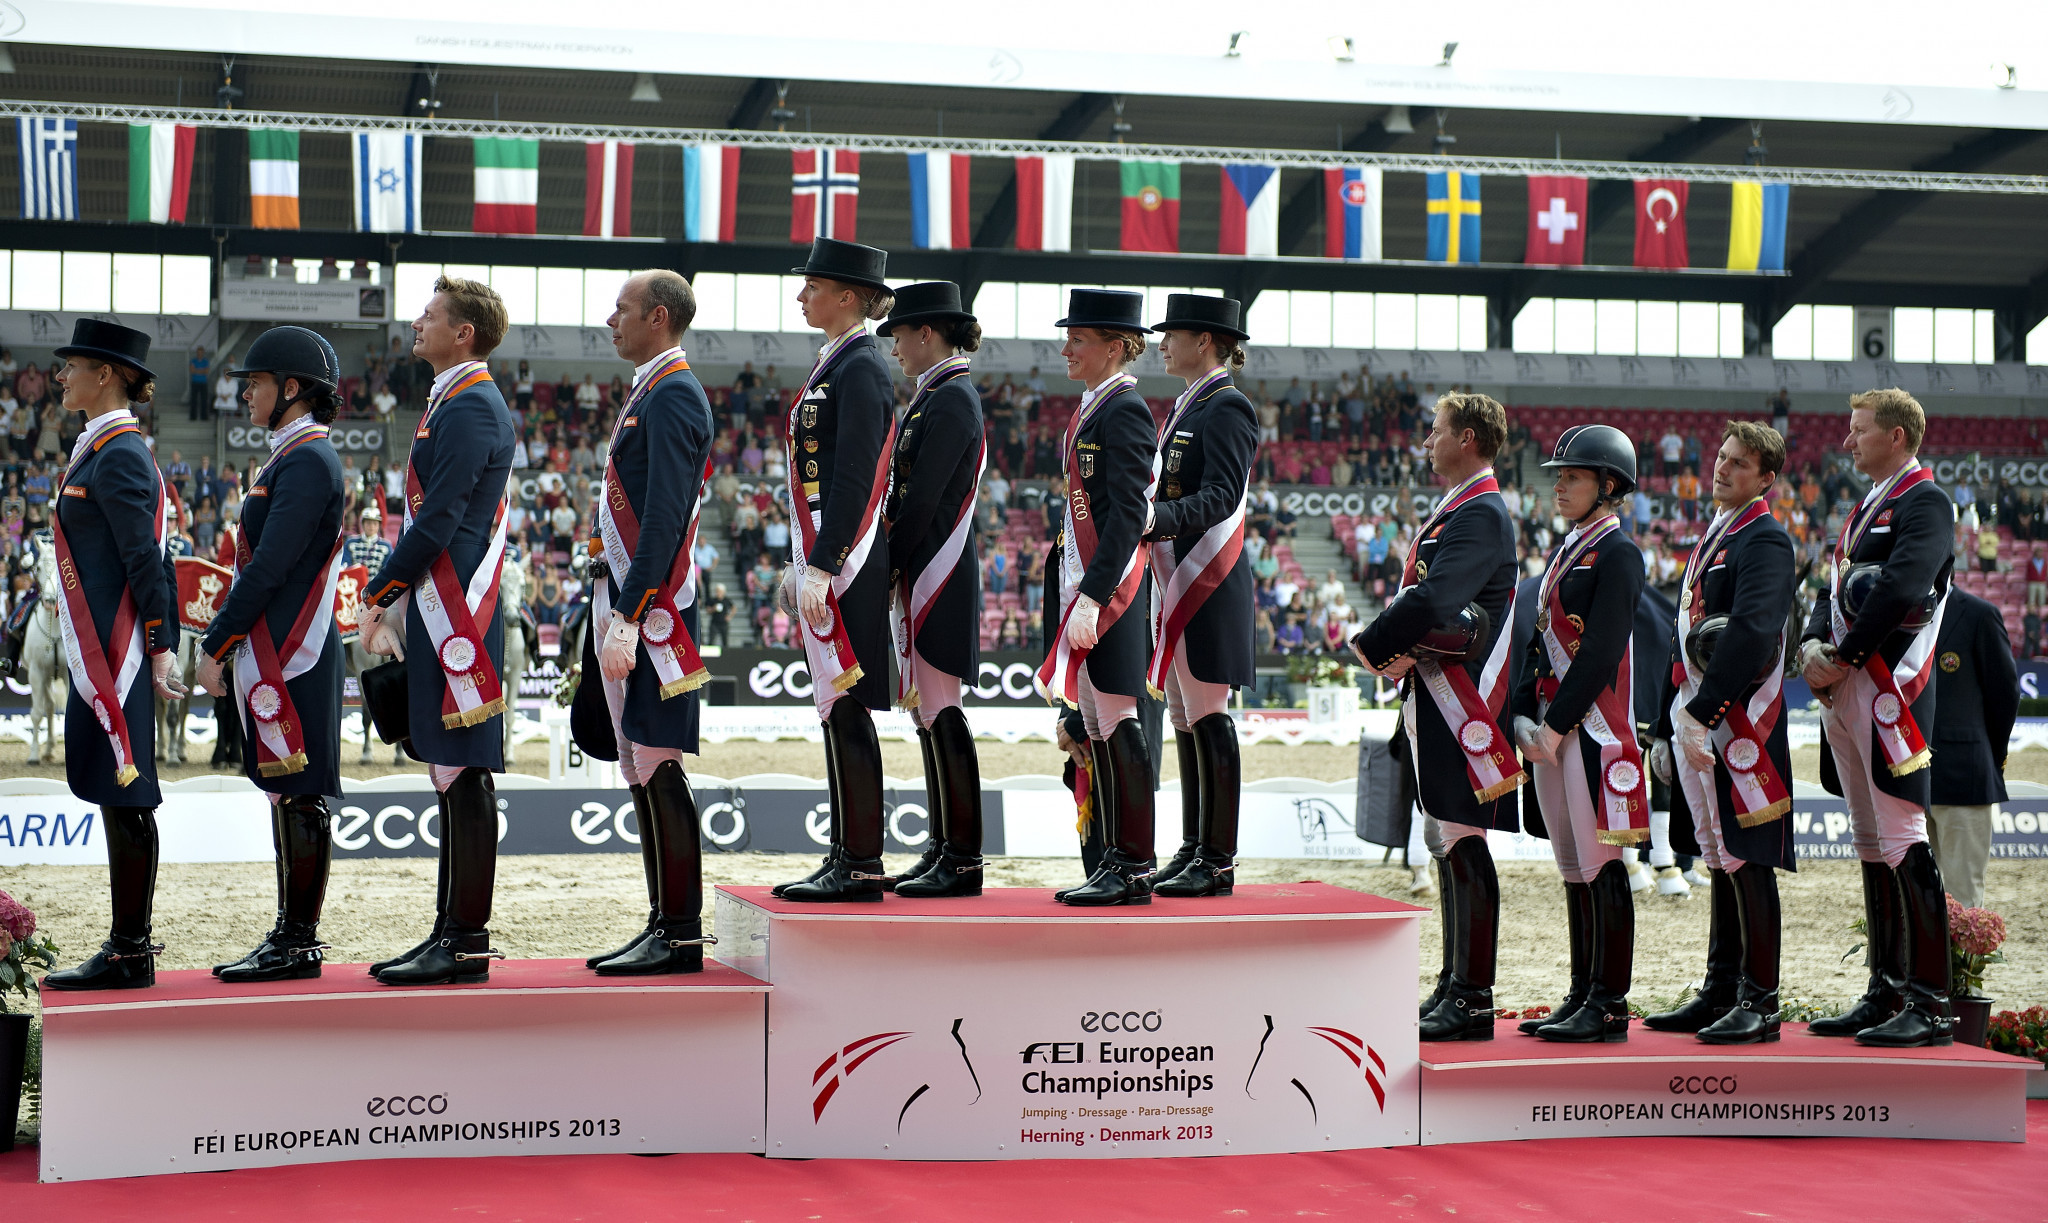 Herning has previously hosted the 2013 FEI European Championships in dressage, jumping and Para dressage ©Getty Images